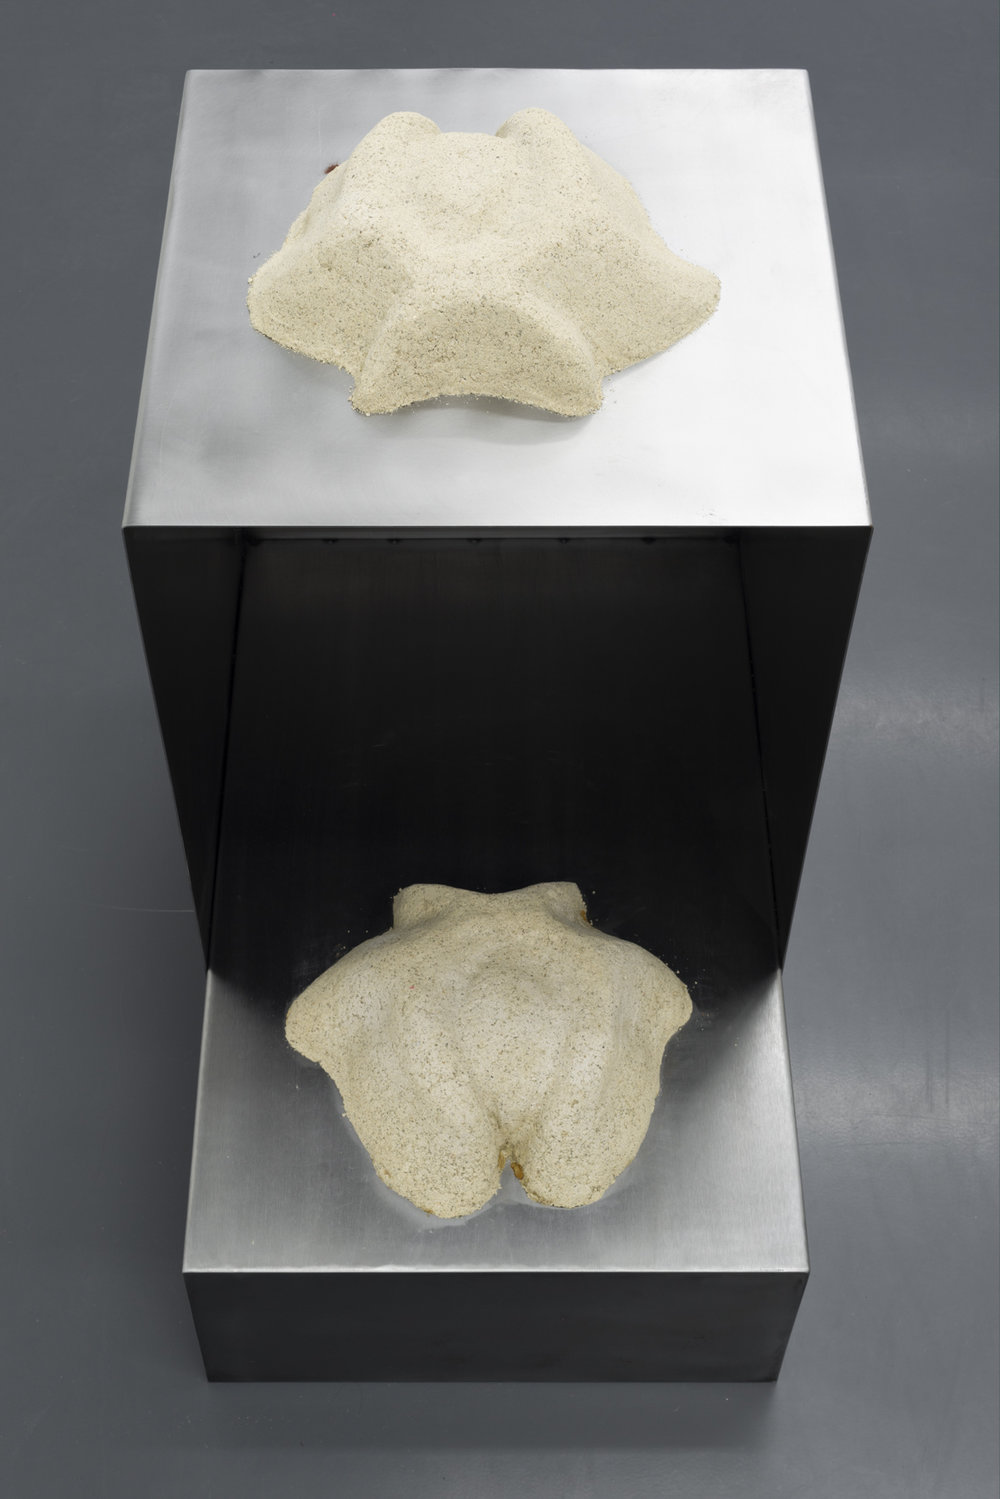 Lena Henke, Eure Frankfurter Küche, 2016, Metal, sand, silicone, fibreglass, epoxy resin, rubber, 70 x 70 x 45 cm, Courtesy: Galerie Emanuel Layr